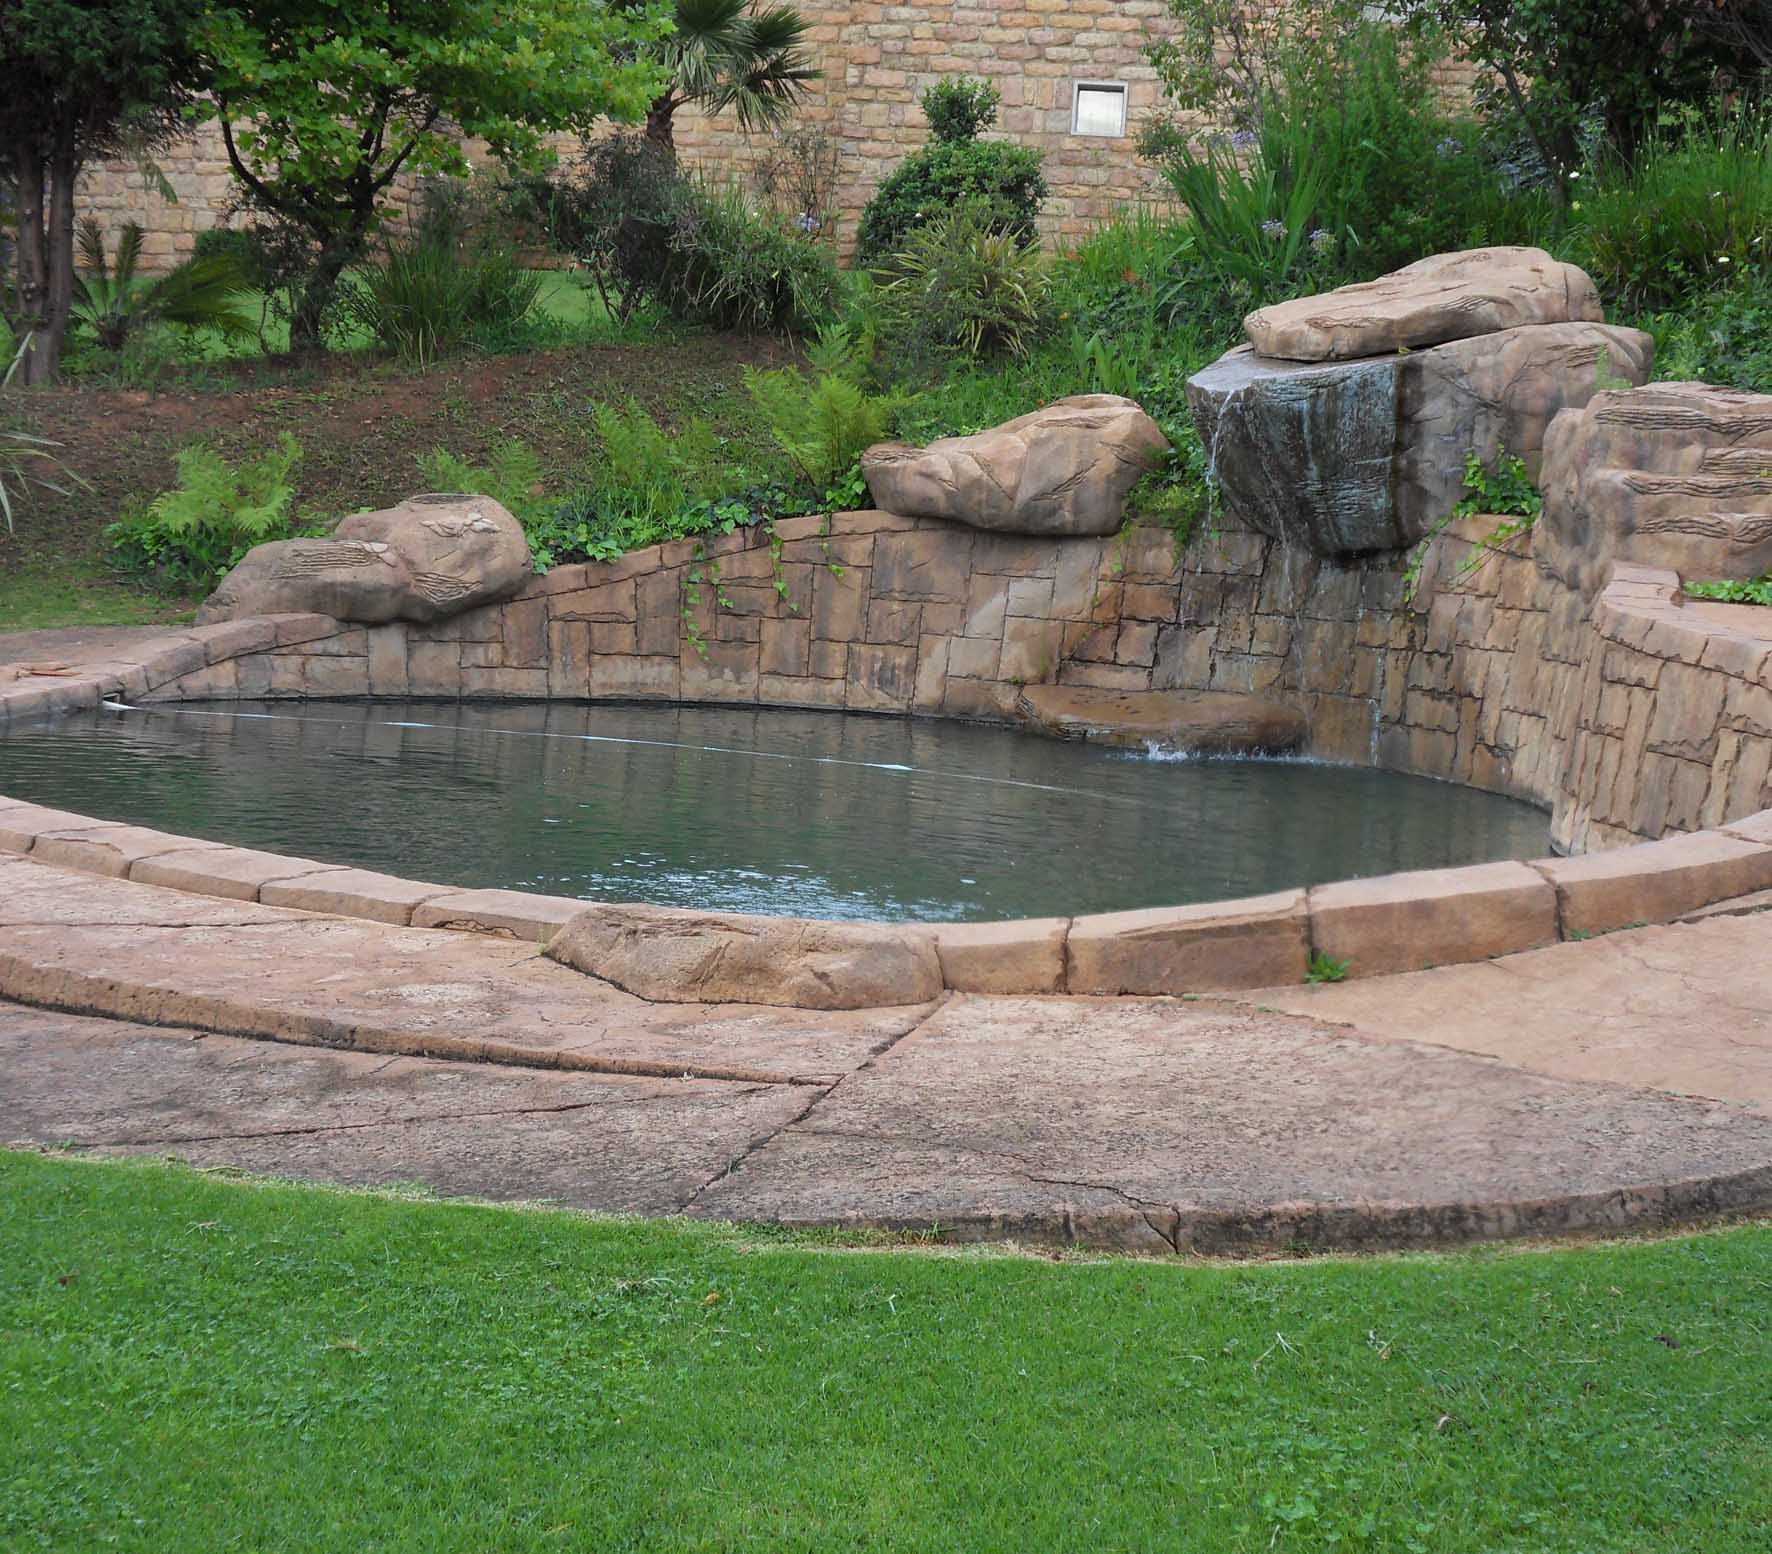 https://highlander.hotelian.co.za/wp-content/uploads/2016/05/Hotelian_The_Highlander_swimming_pool.jpg